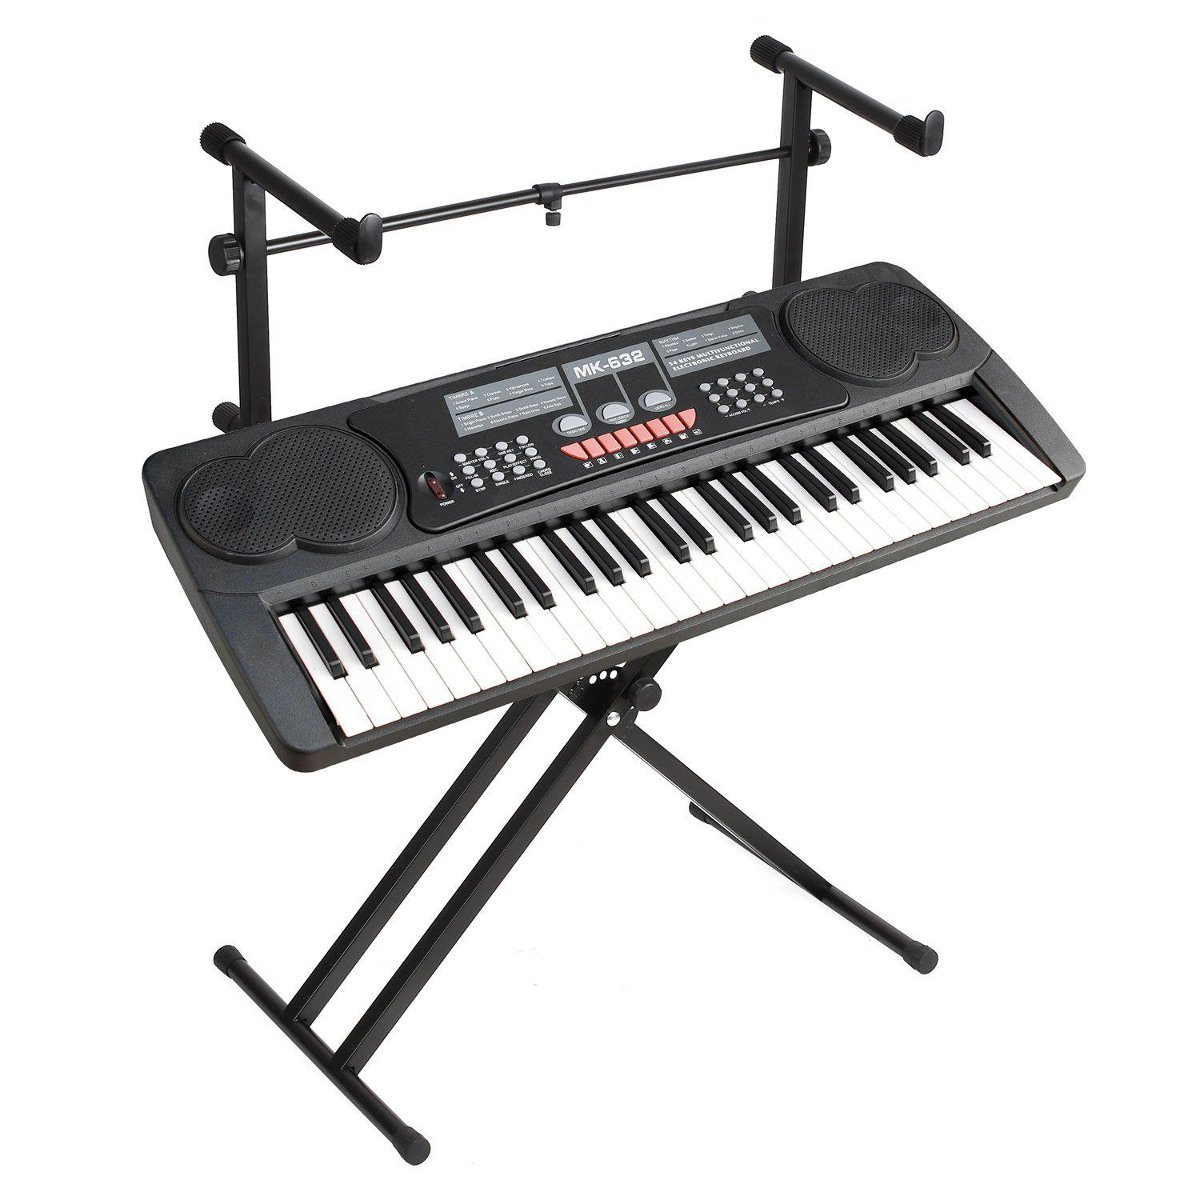 2-Tiers X Style Dual Keyboard Stand Adjustable Electronic Music Piano Holder Musical Keyboard Instrument Accessories Parts2-Tiers X Style Dual Keyboard Stand Adjustable Electronic Music Piano Holder Musical Keyboard Instrument Accessories Parts